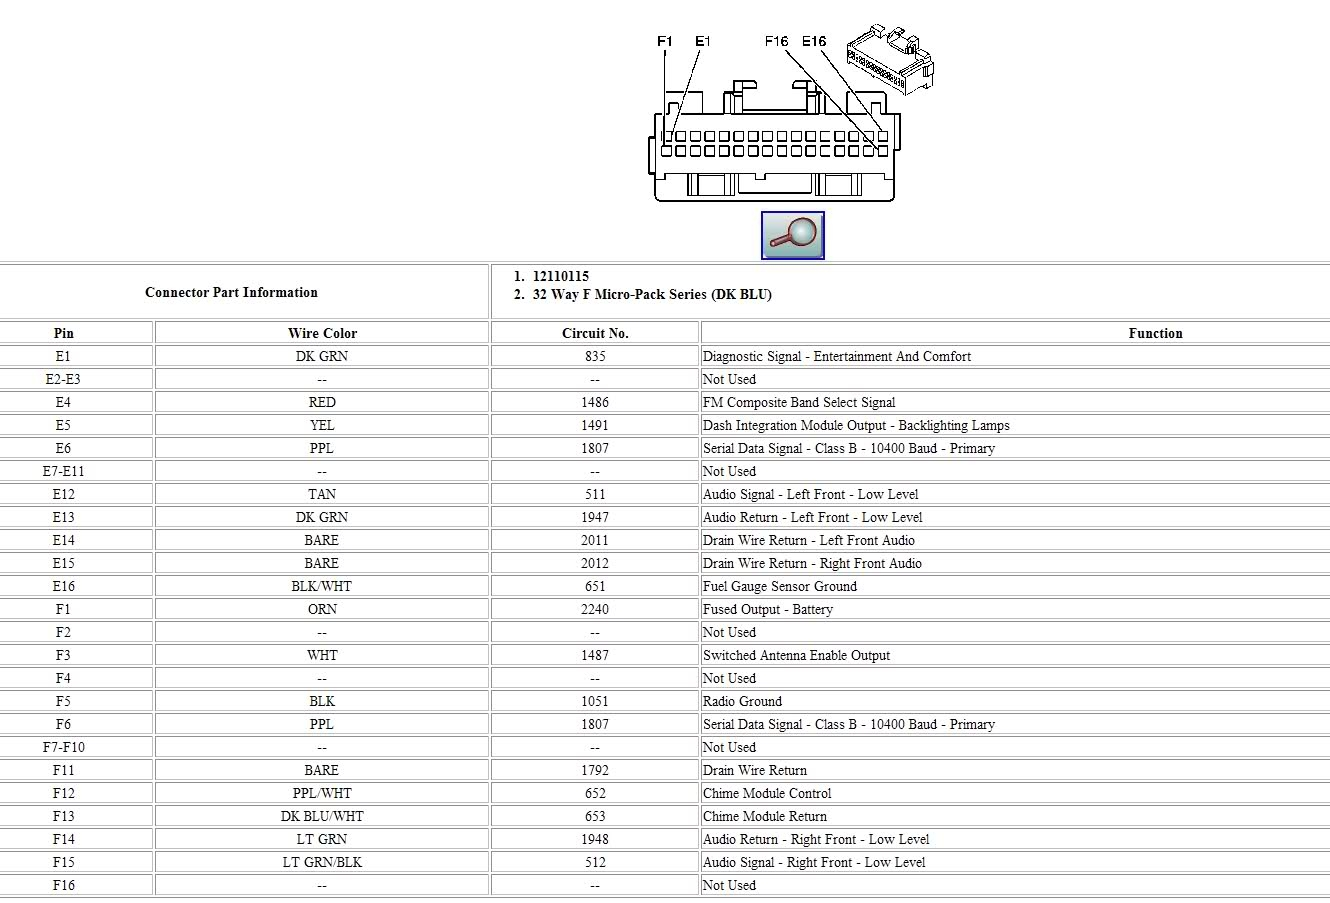 2000 cadillac deville radio wiring diagram Download-2011 Chevy Silverado Radio Wiring Diagram Cadillac Escalade Wiring Diagram Cadillac Wiring Diagrams 20-j